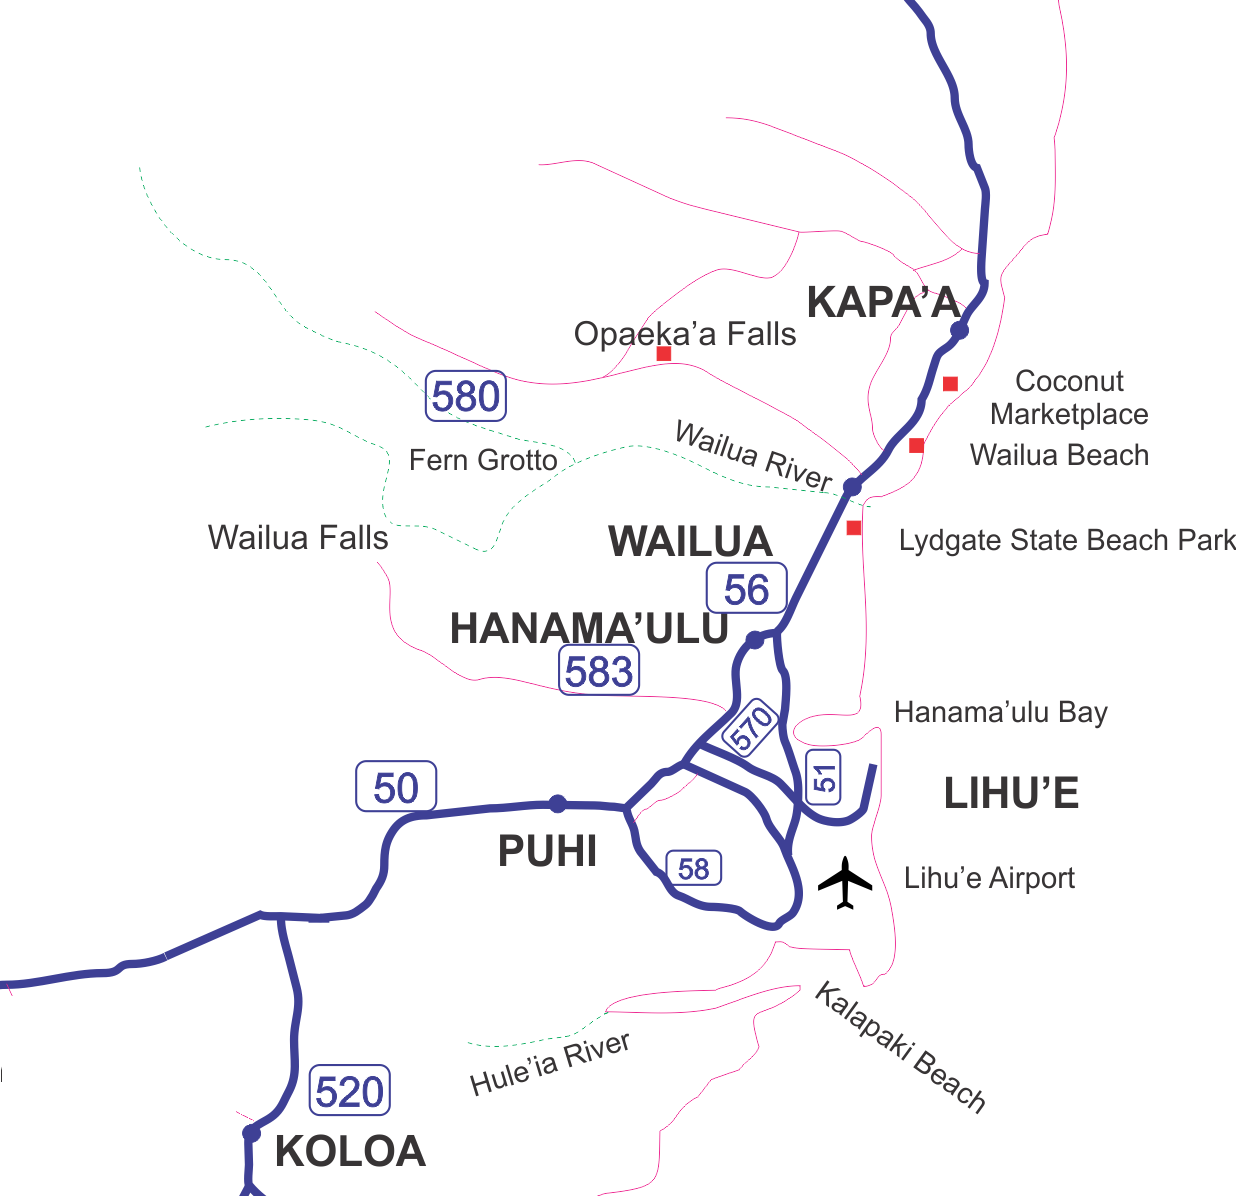 Map of Kauai's East shore